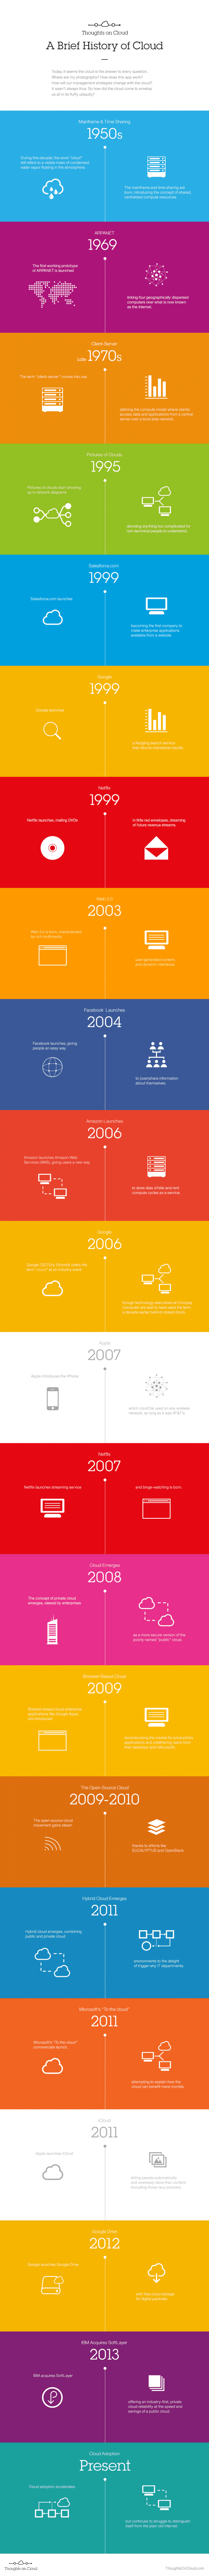 Cloud_Timeline_Infographic